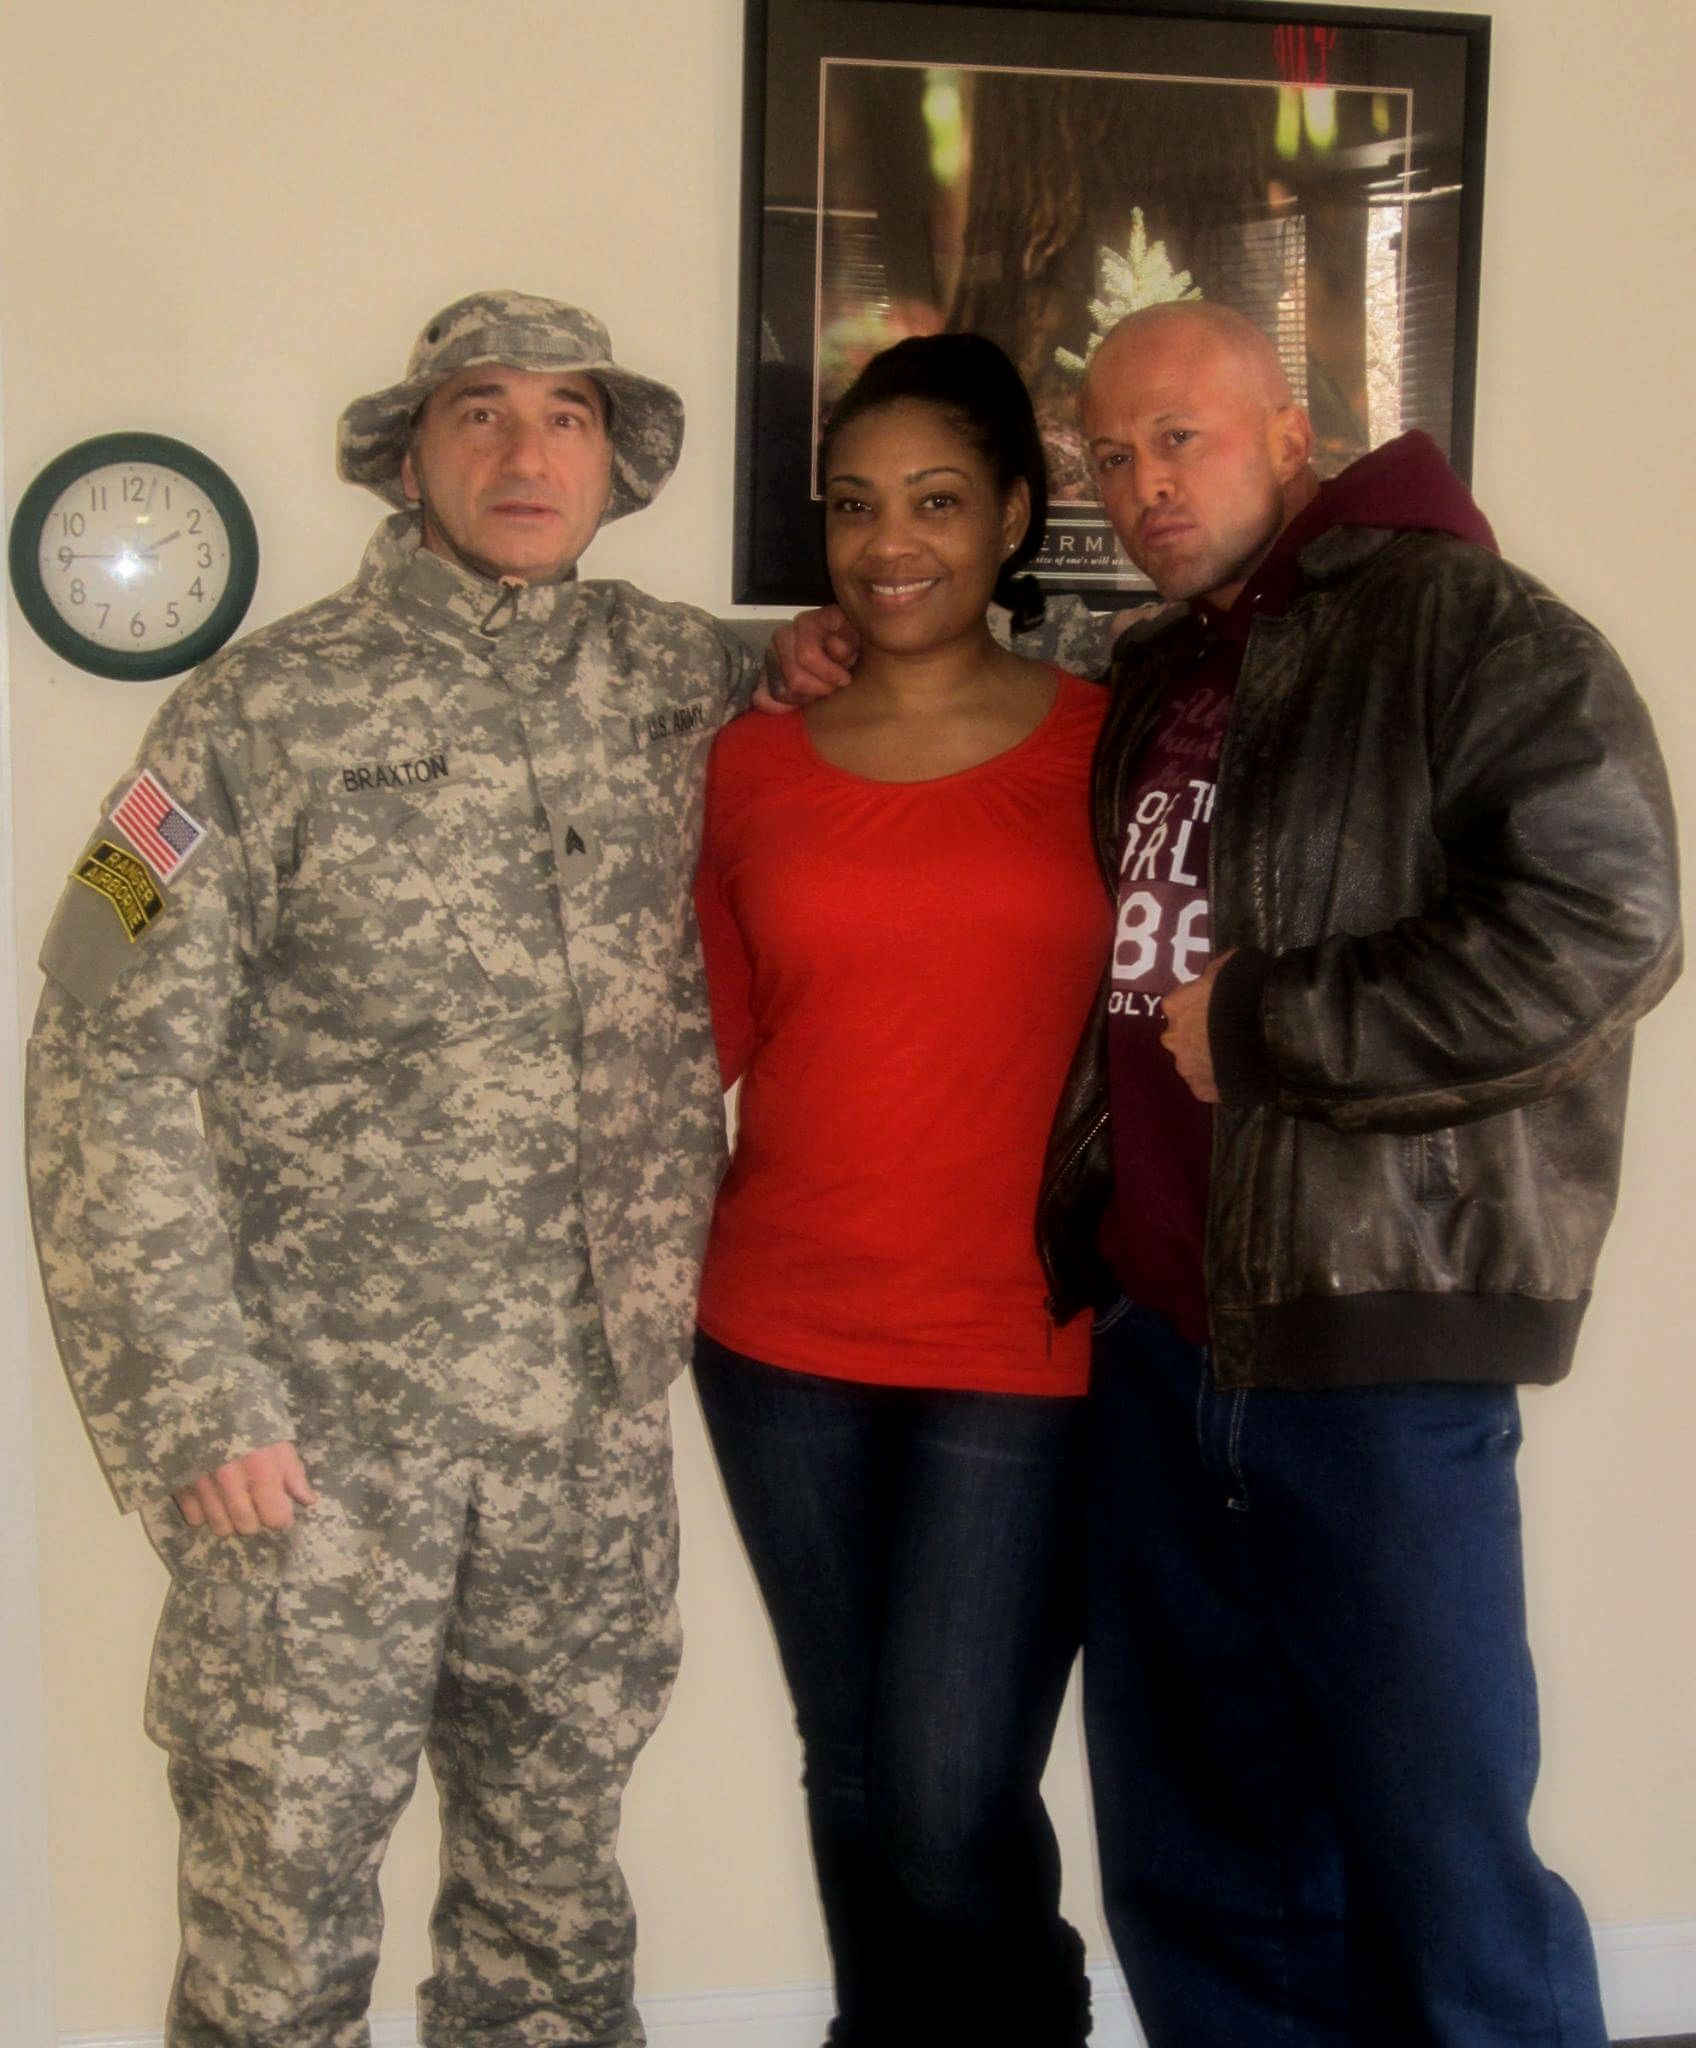 Actor Charles Astoria Tamara Woods & John Joseph Quinlan On Movie Set 2016 #JohnQuinlan